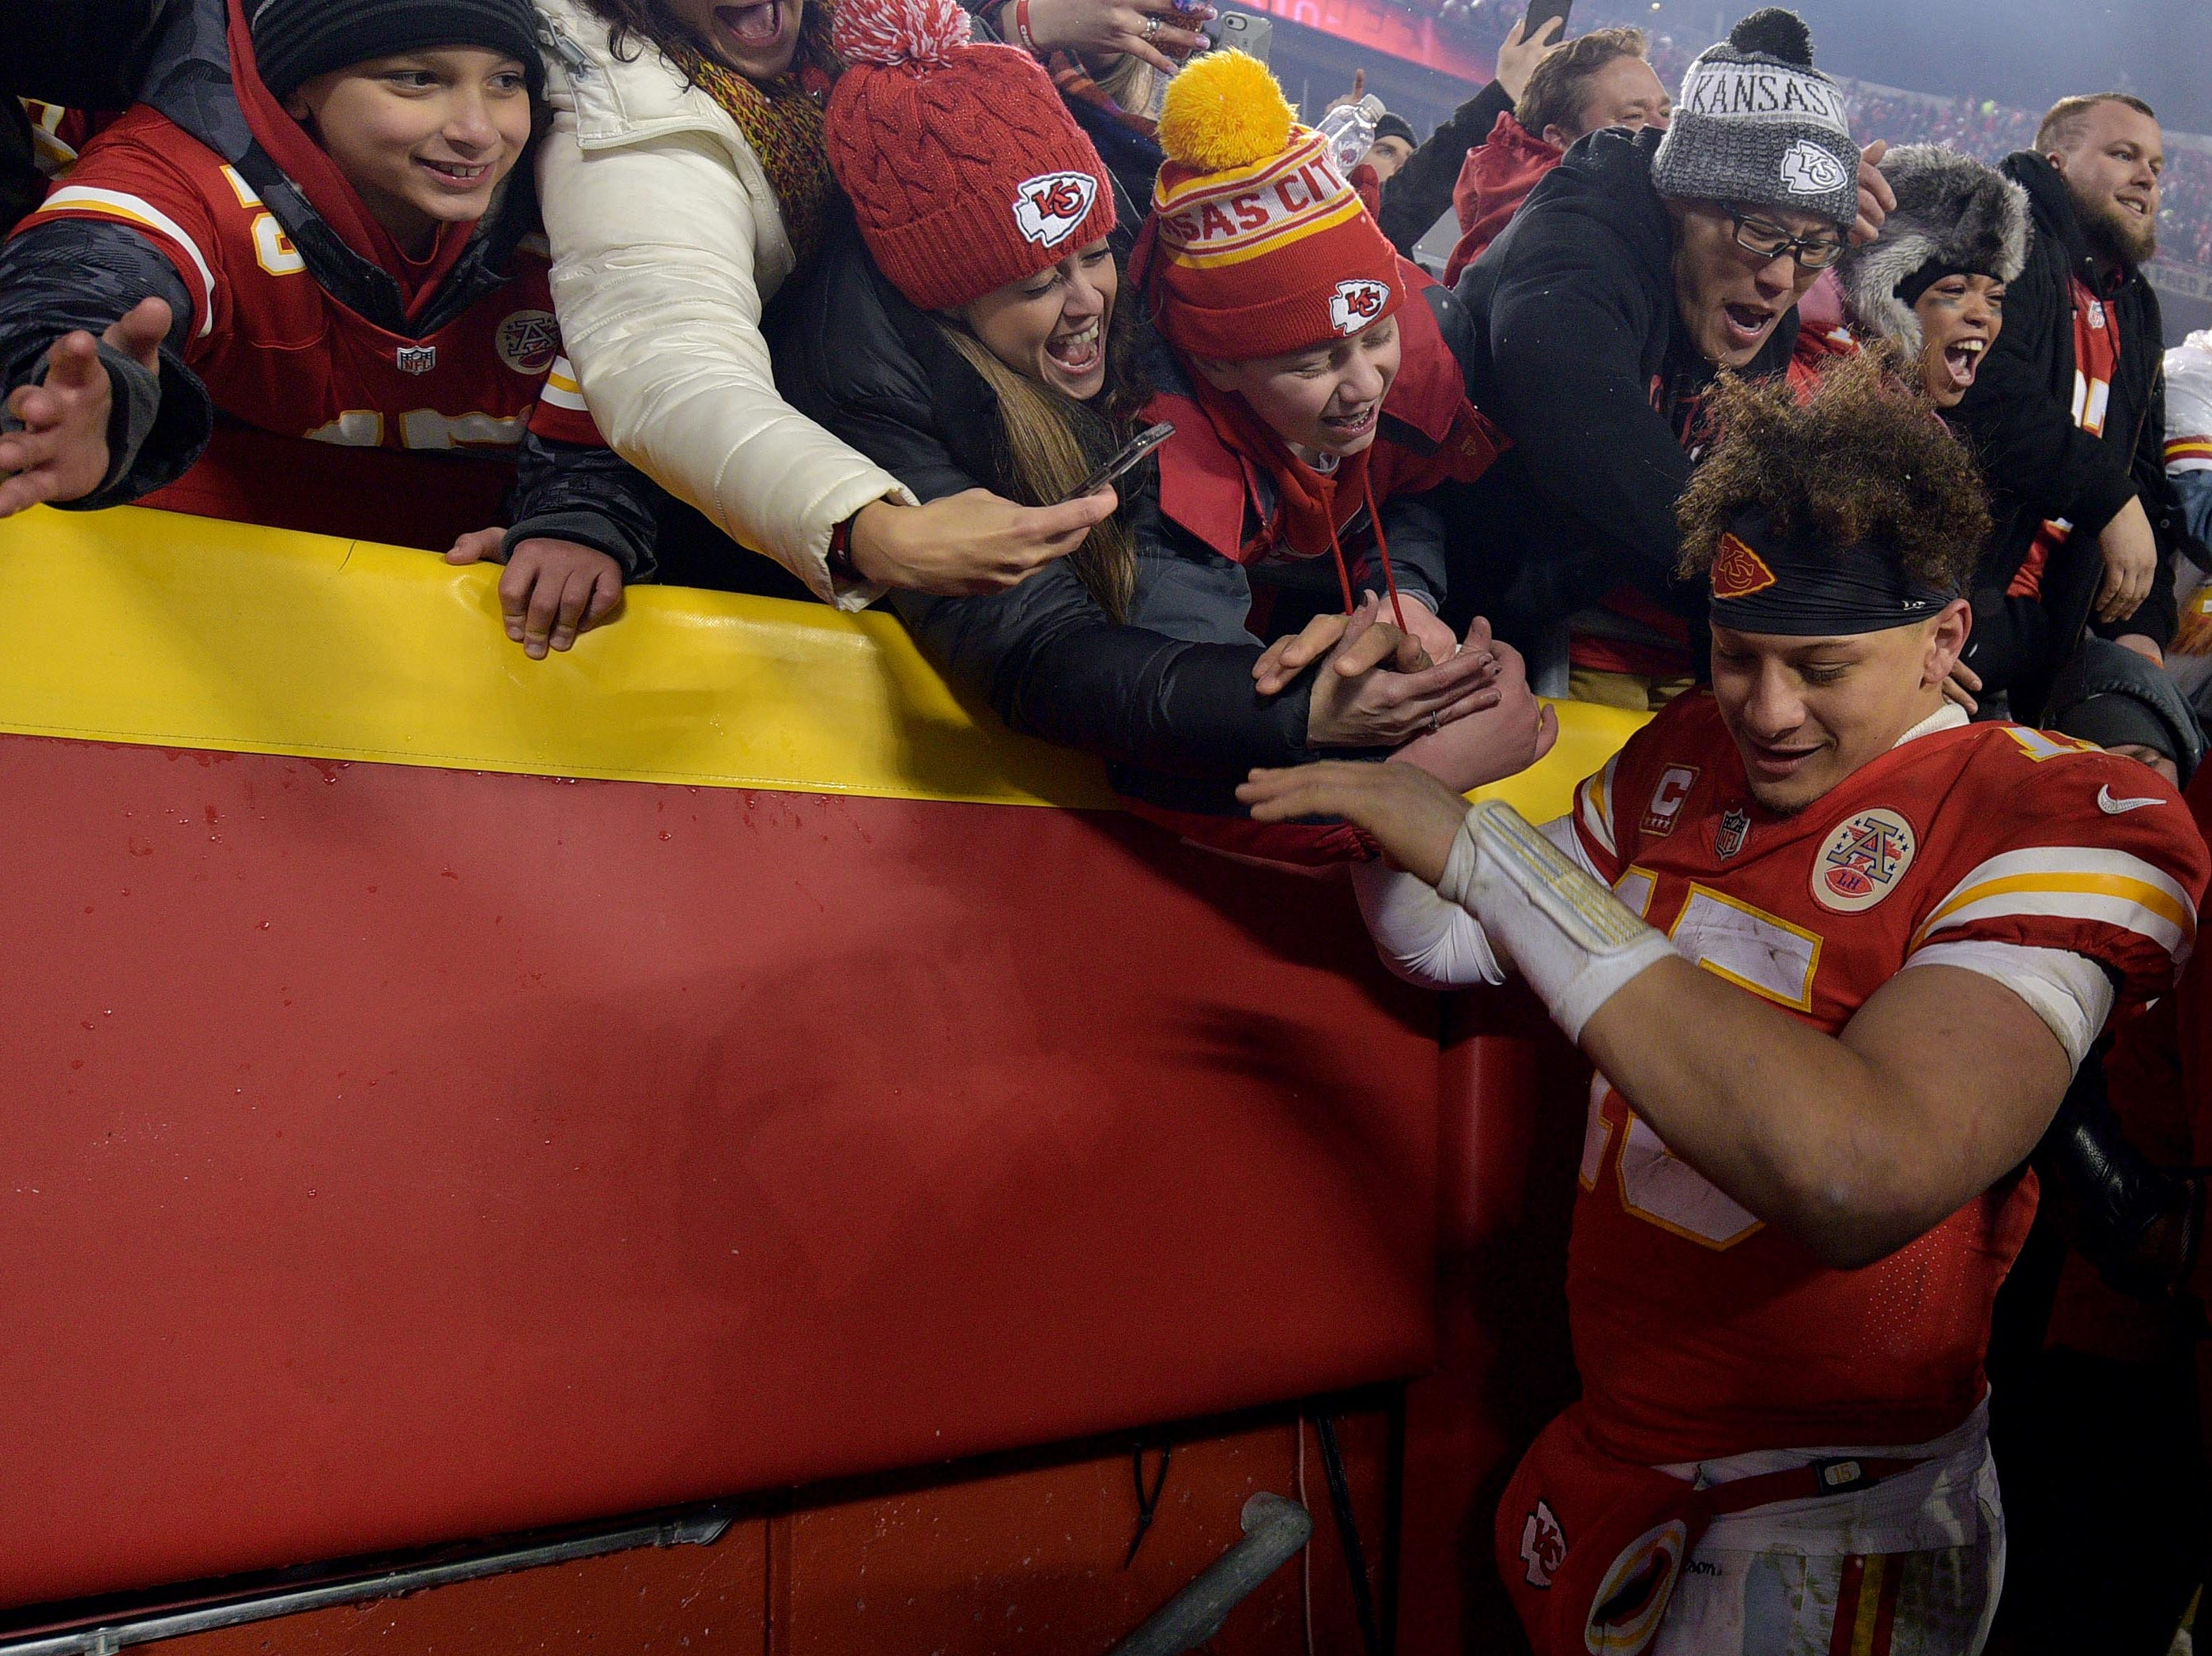 Kansas City Chiefs quarterback Patrick Mahomes (15) high-fives fans after beating the Indianapolis Colts at Arrowhead Stadium.